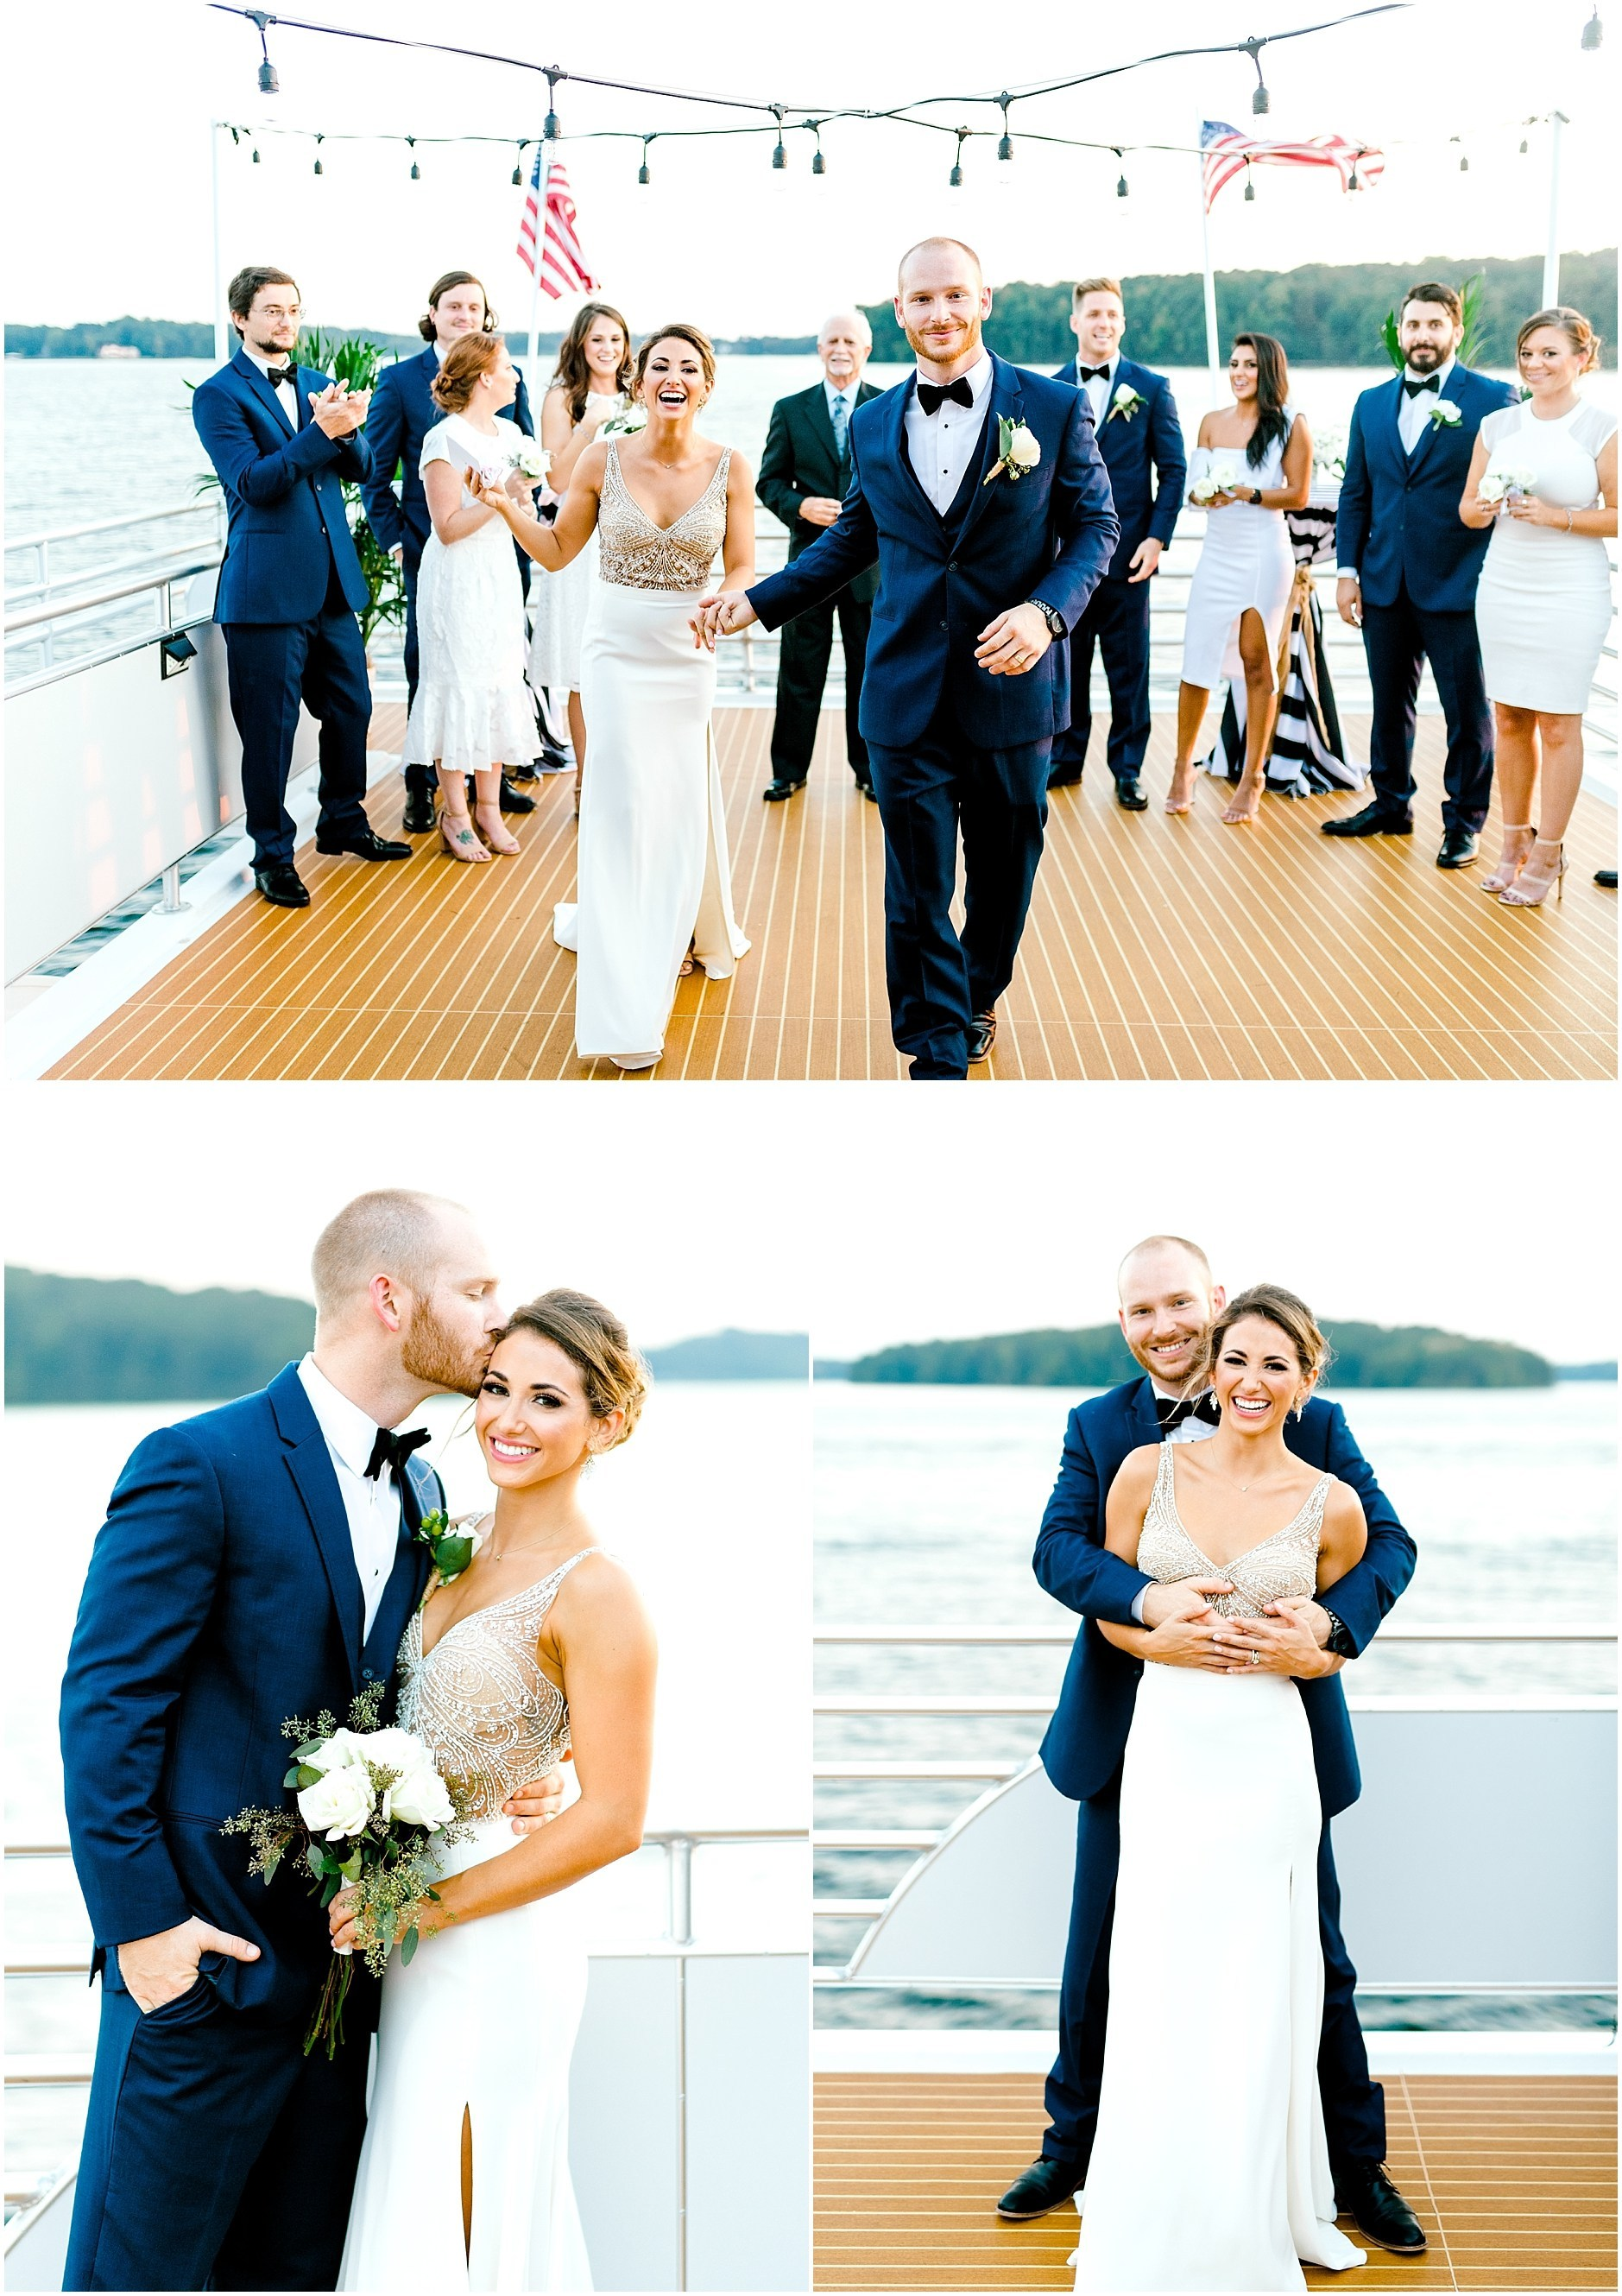 Nautical_Boat_Wedding_CarolinaGraceYachtWedding_KatherynJeannePhotography1689.jpg